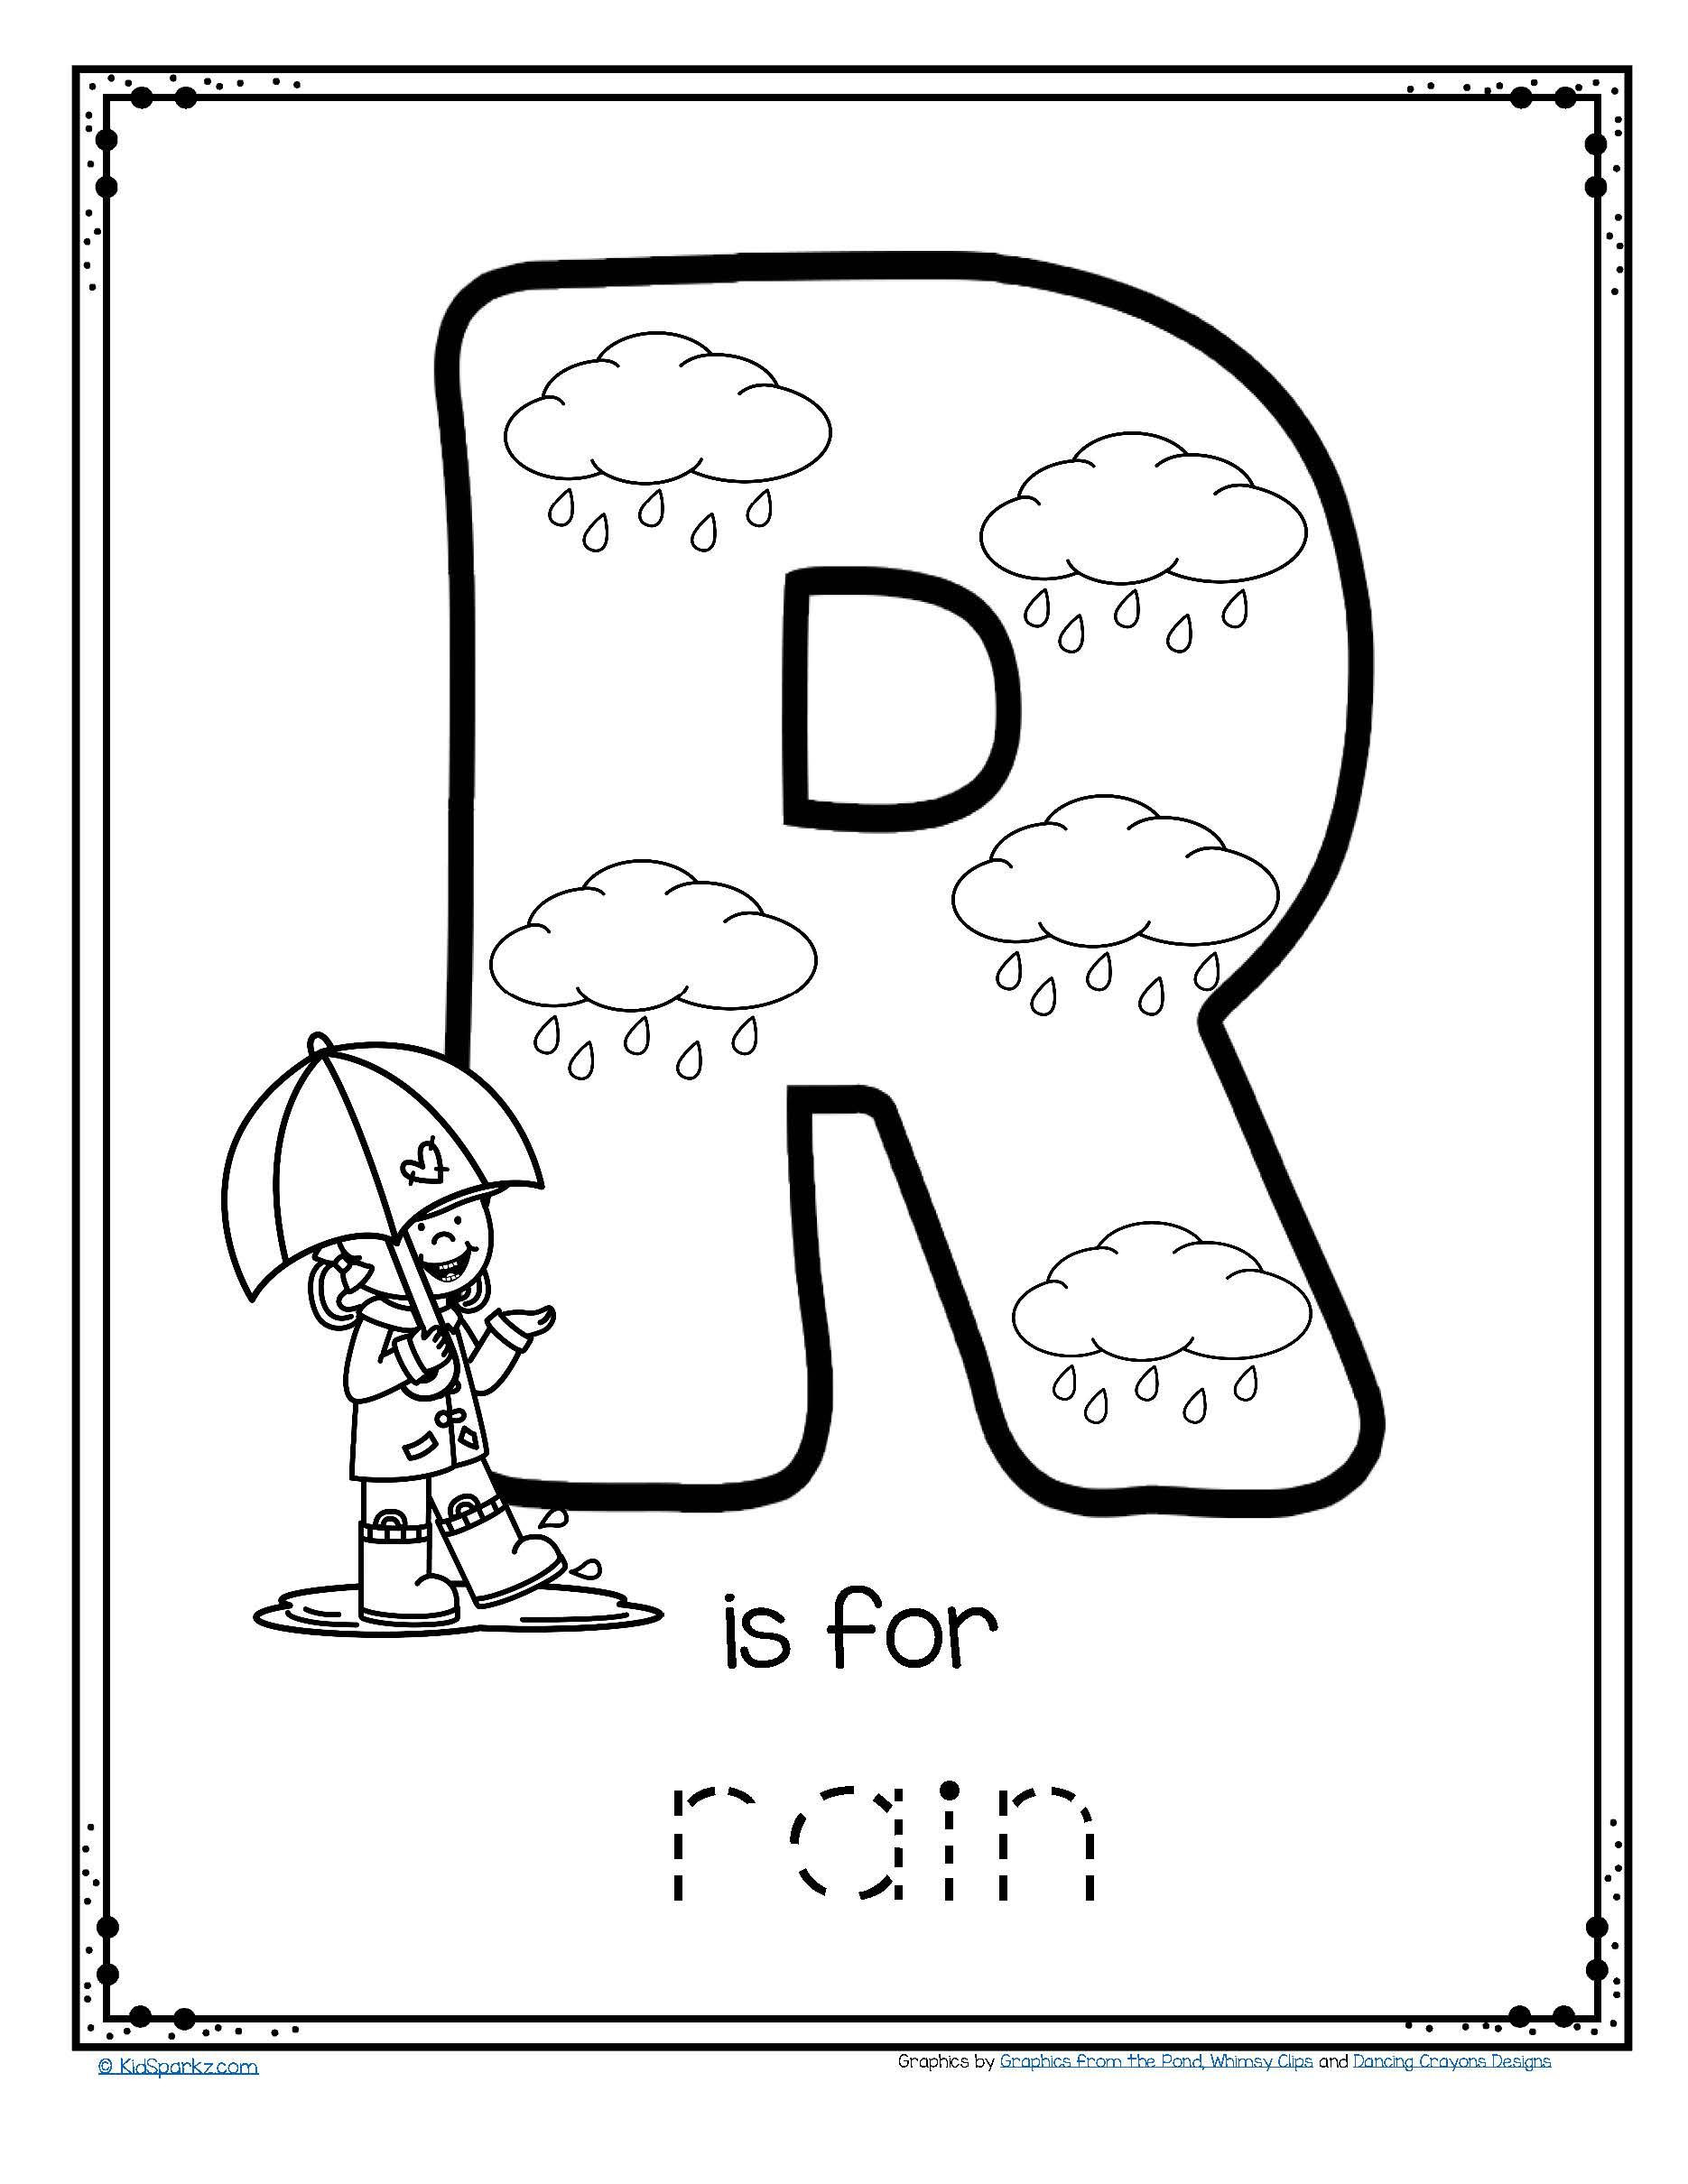 Preschool Letter R Worksheets Free R is for Rain Alphabet Trace and Color Printable